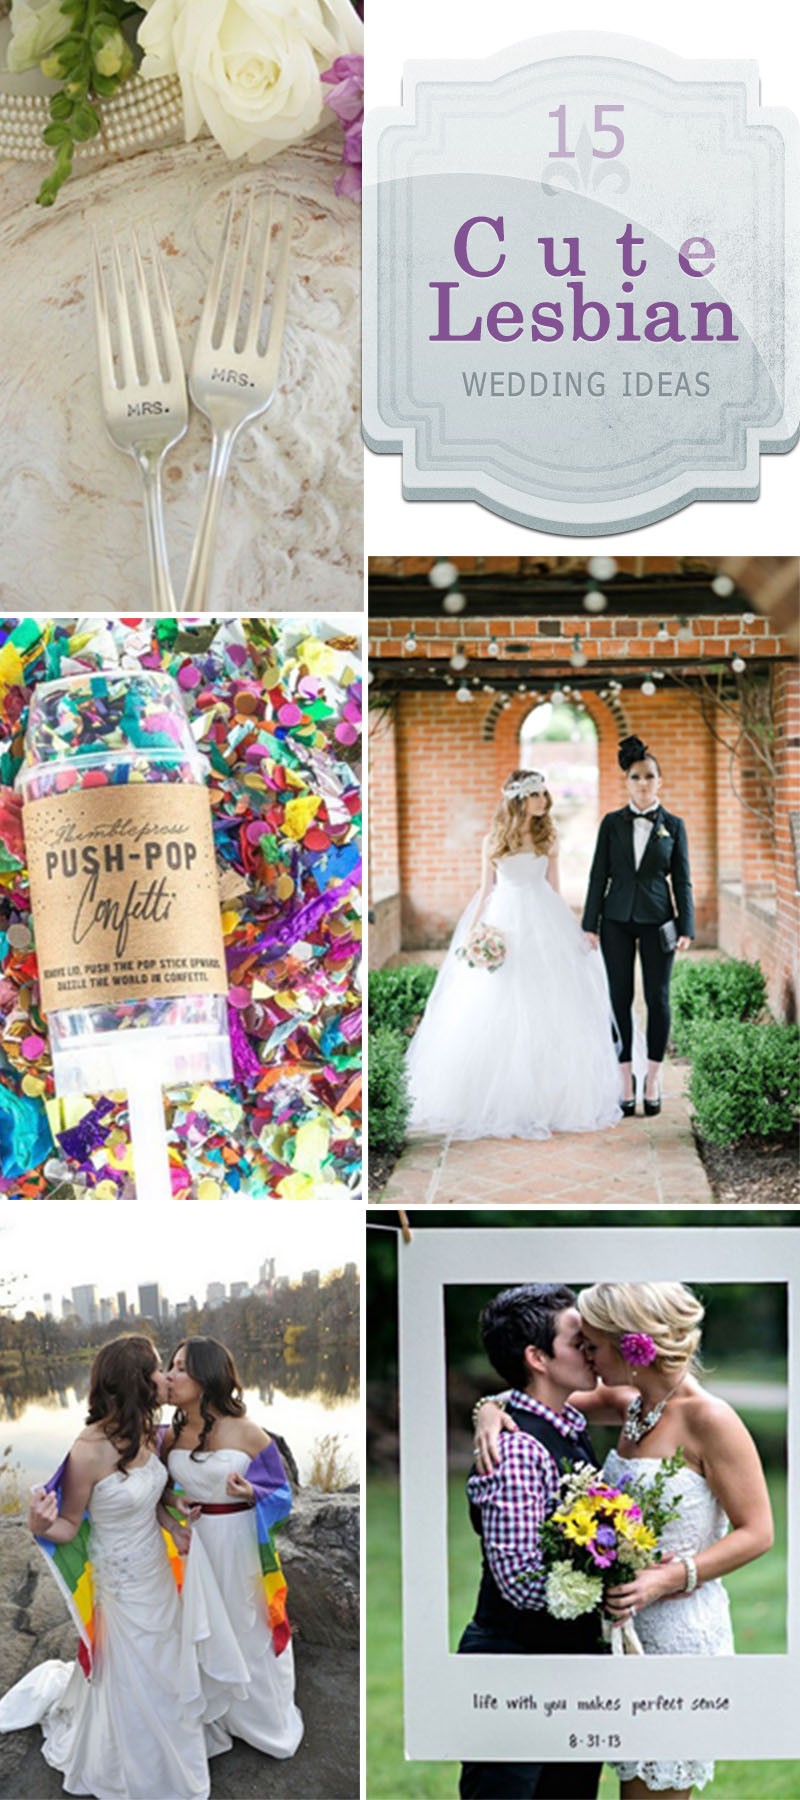 Wedding Ideas Peacock Themed: 15 Cute Lesbian Wedding Ideas